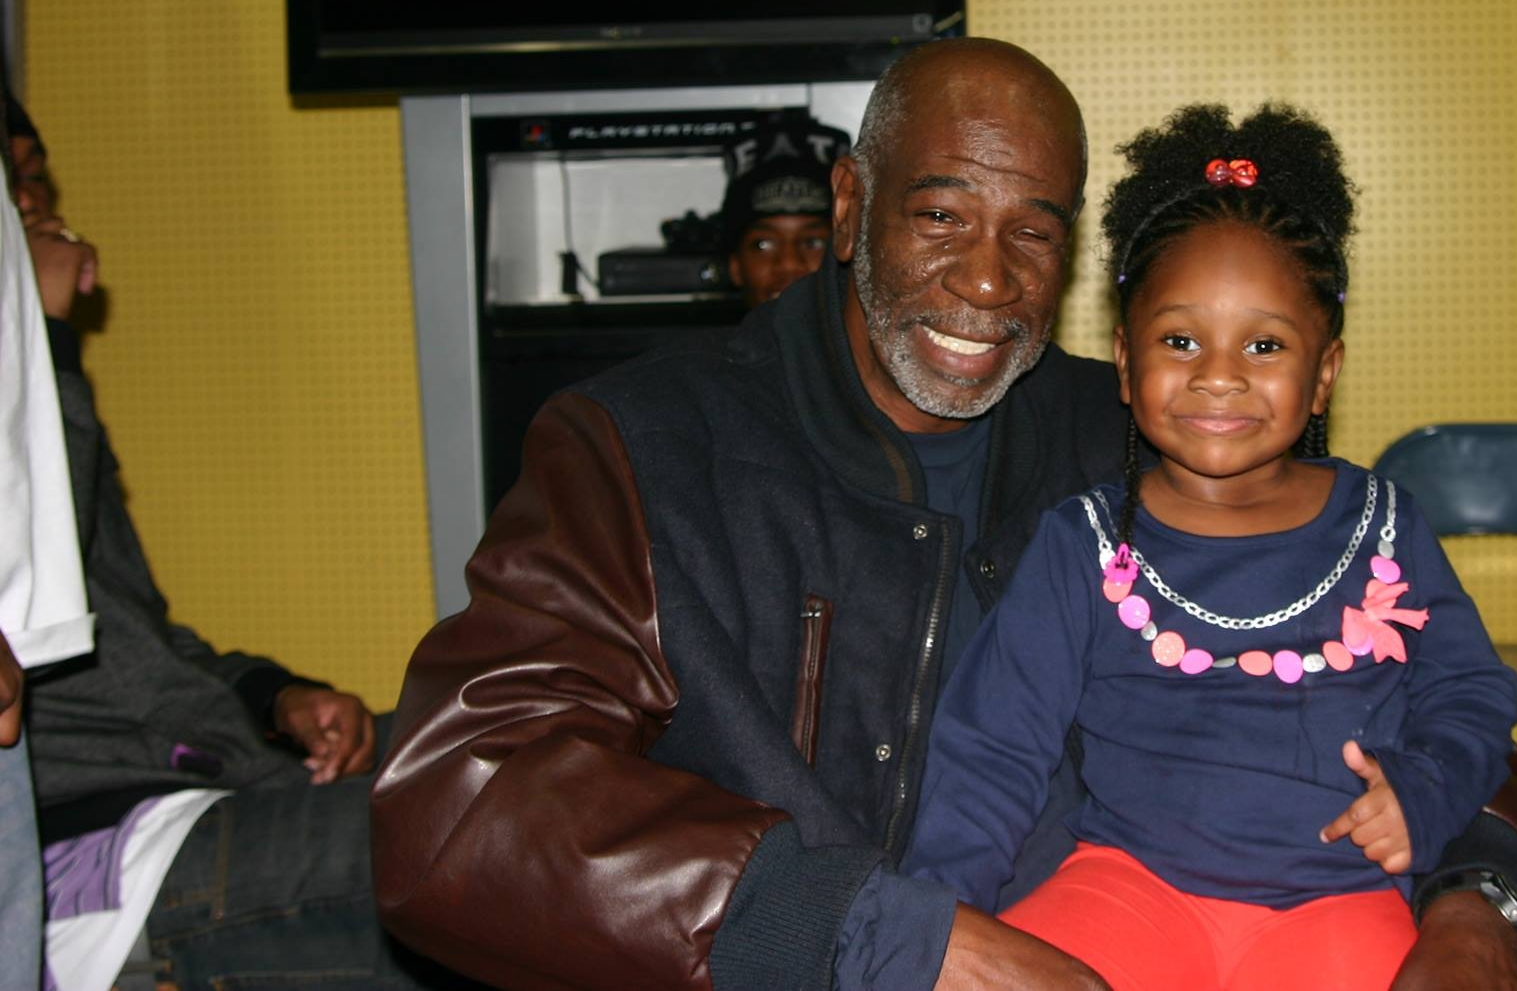 Jerry with his granddaughter, Alani at her birthday party in 2014.